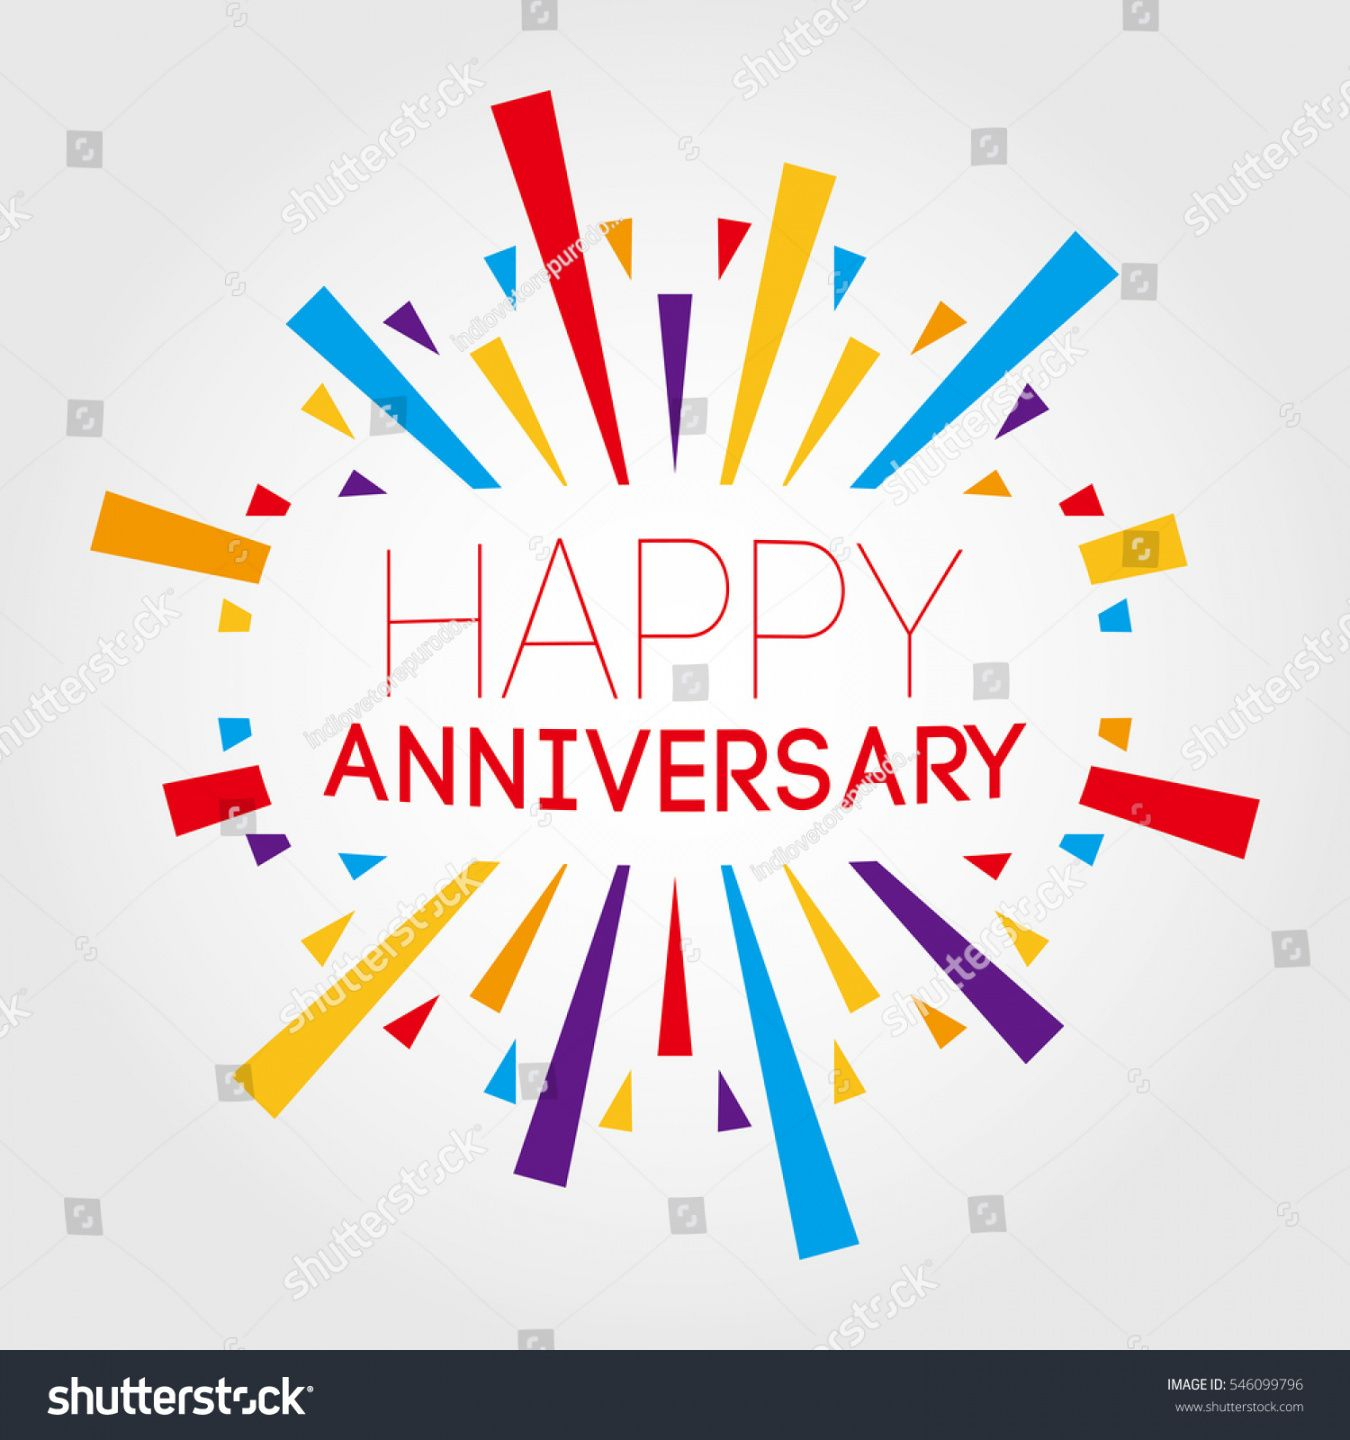 sample vector de stock libre de regalías sobre happy anniversary happy anniversary banner template word